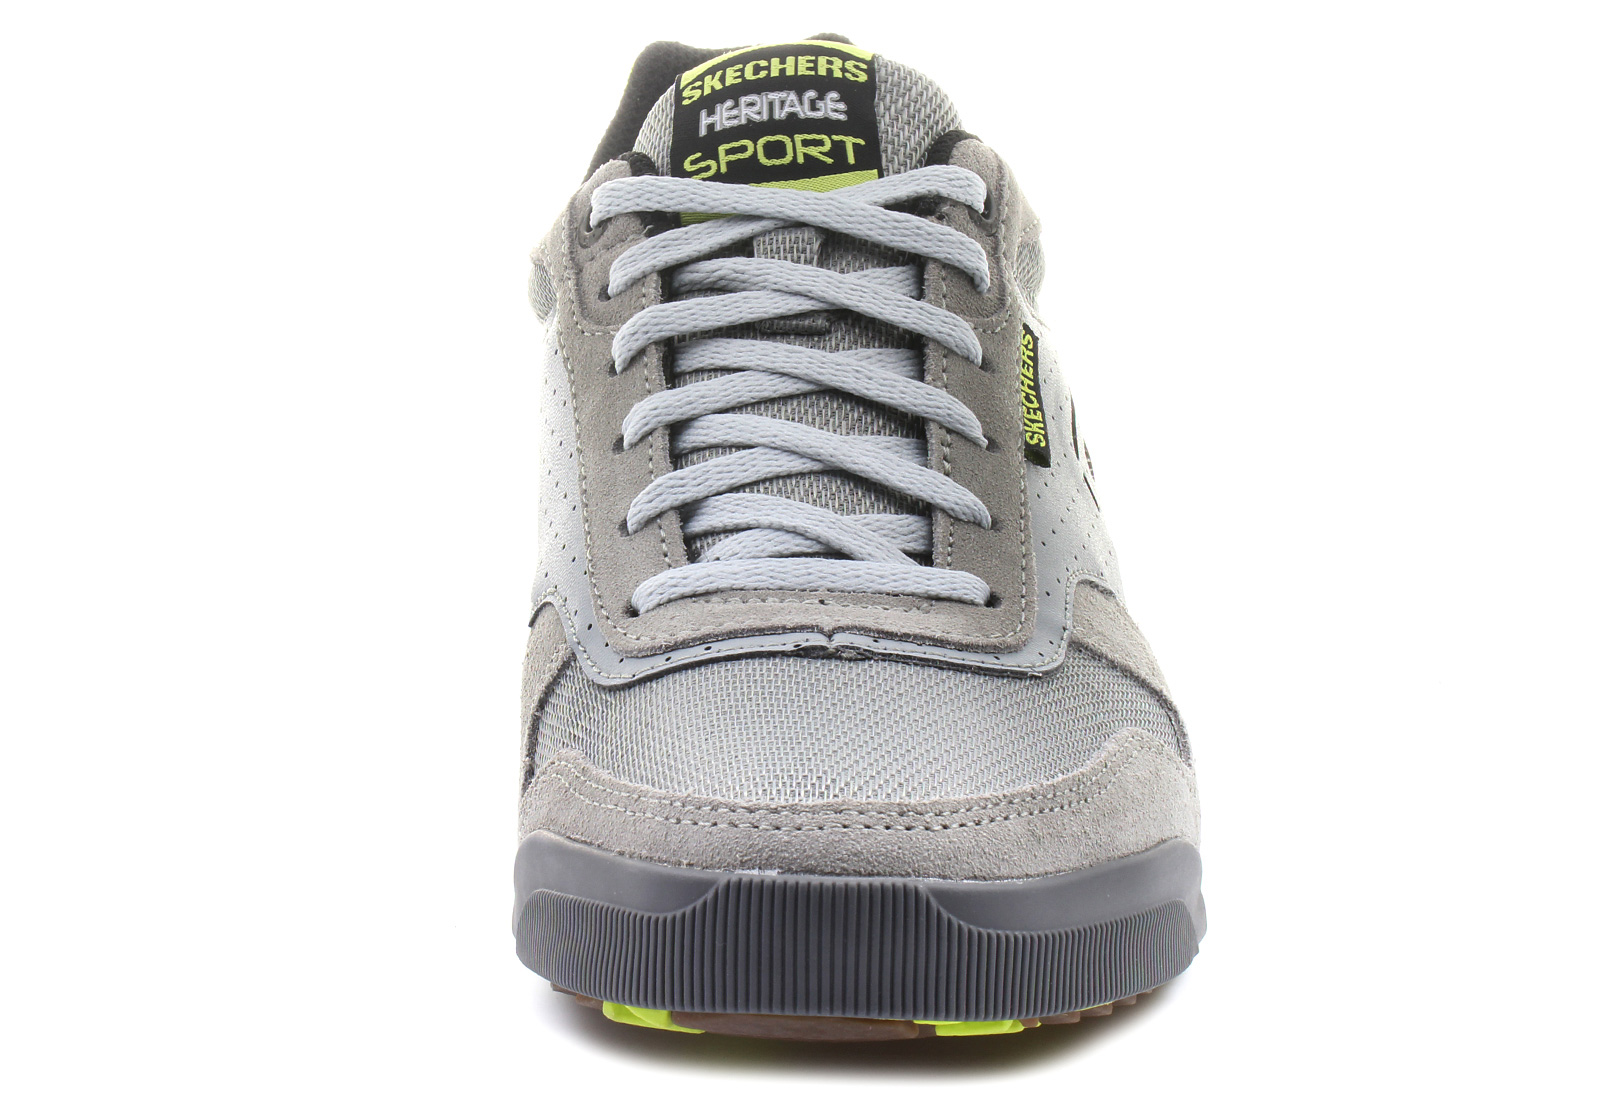 Shop SneakersAnd Boots Exquisite Makes For Shoes Skechers Gylm 51202 Online nwP0Ok